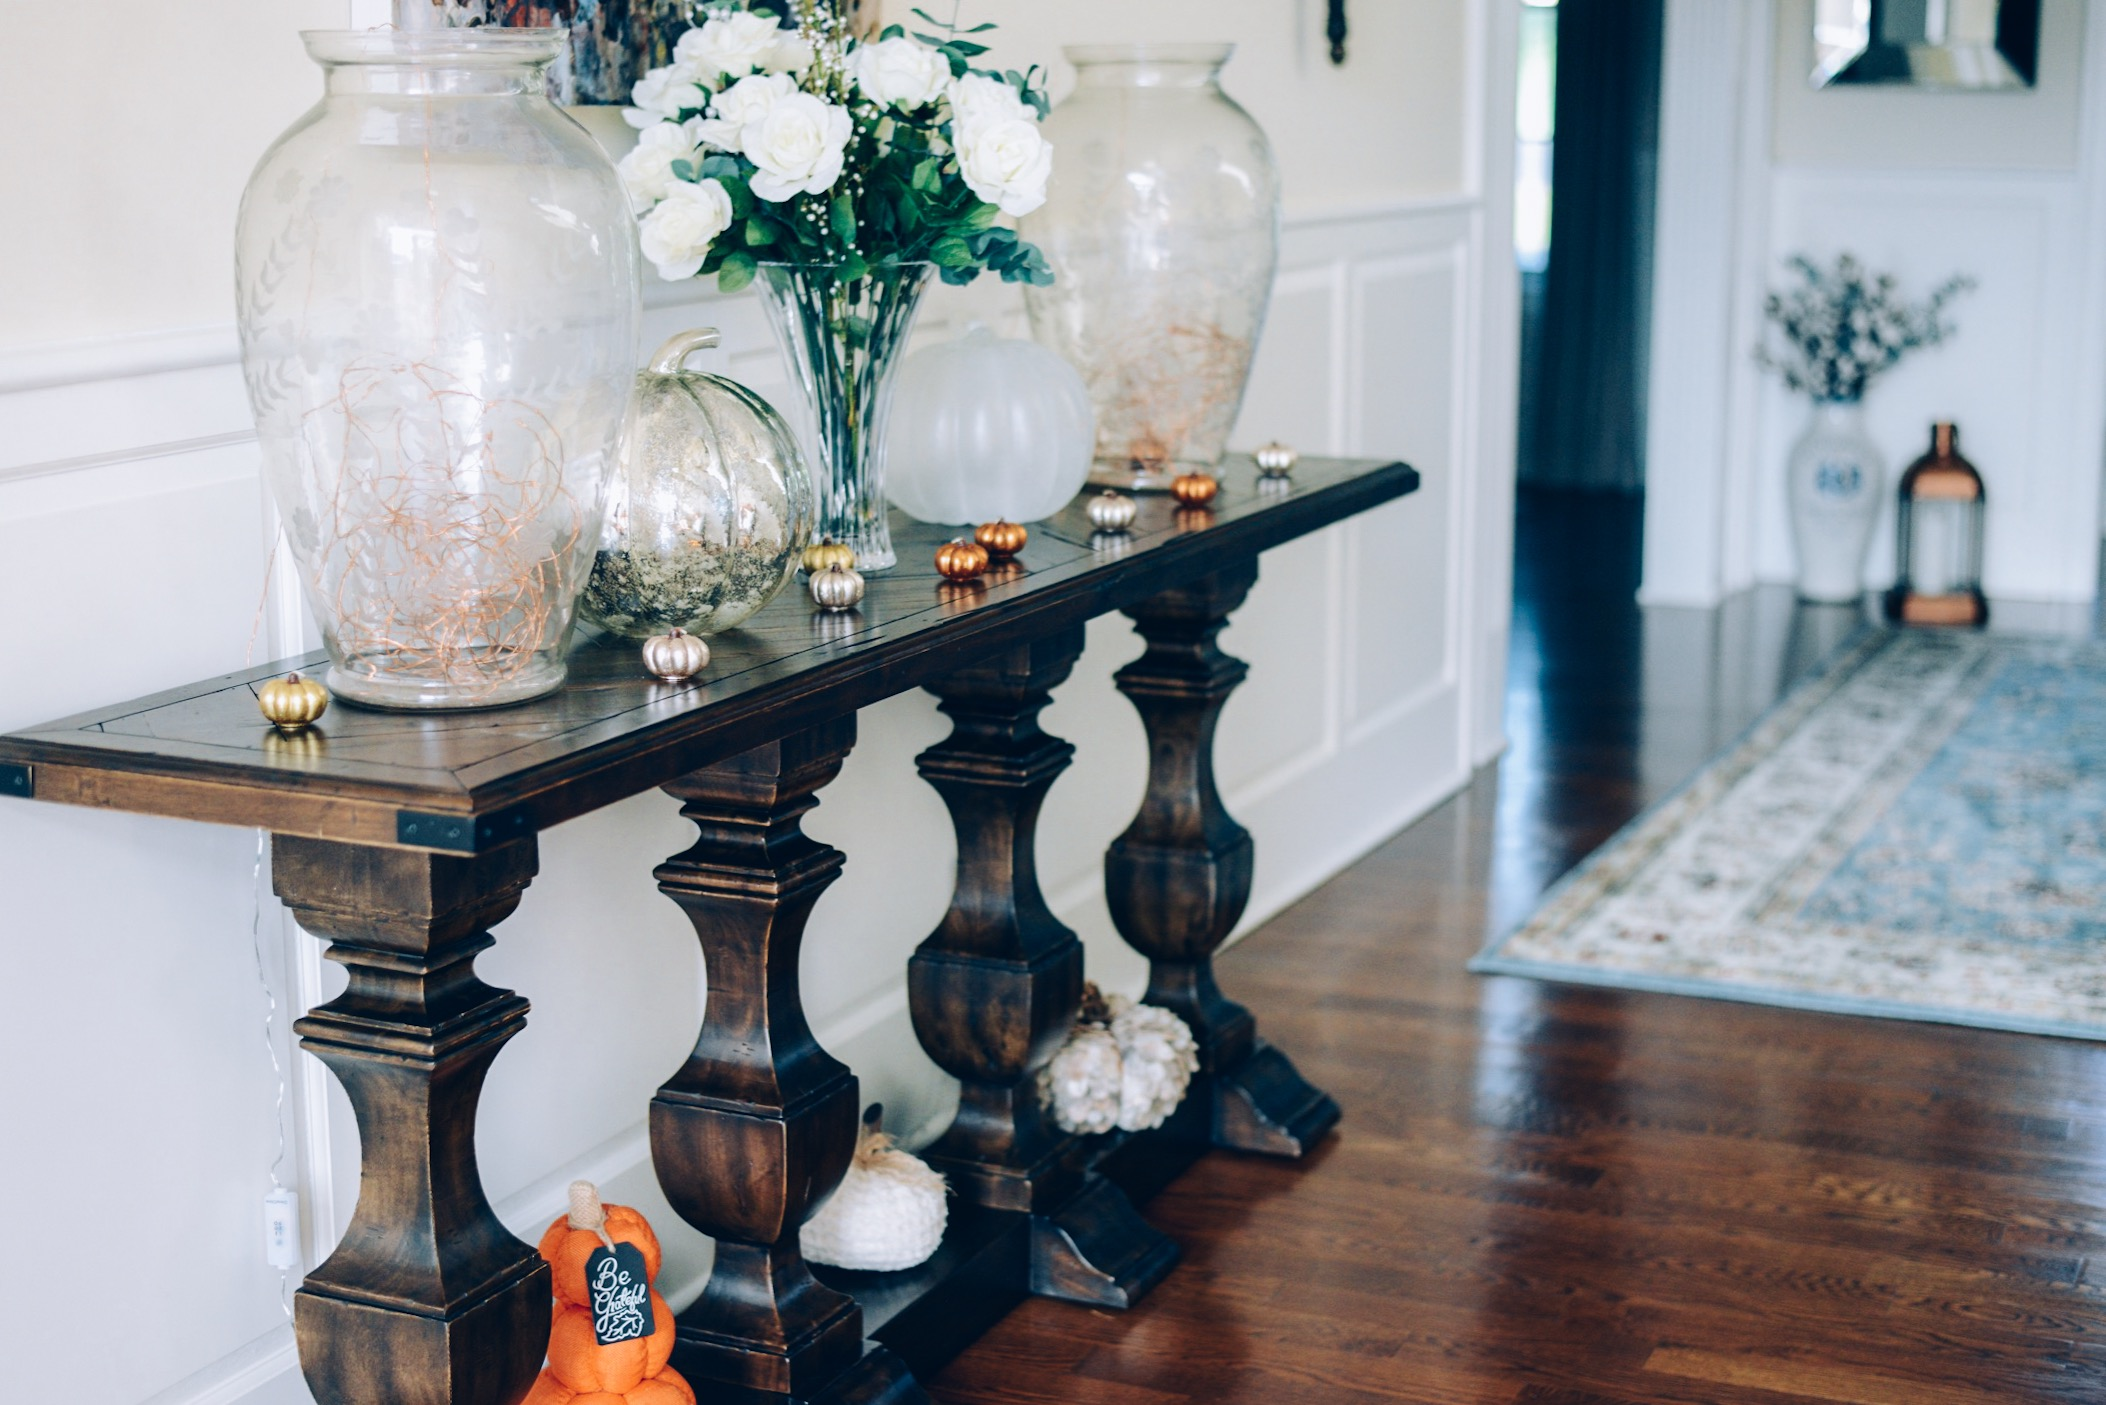 How I Decorated My Home Interior for Fall- Terrain lanterns with copper wire lights on console table